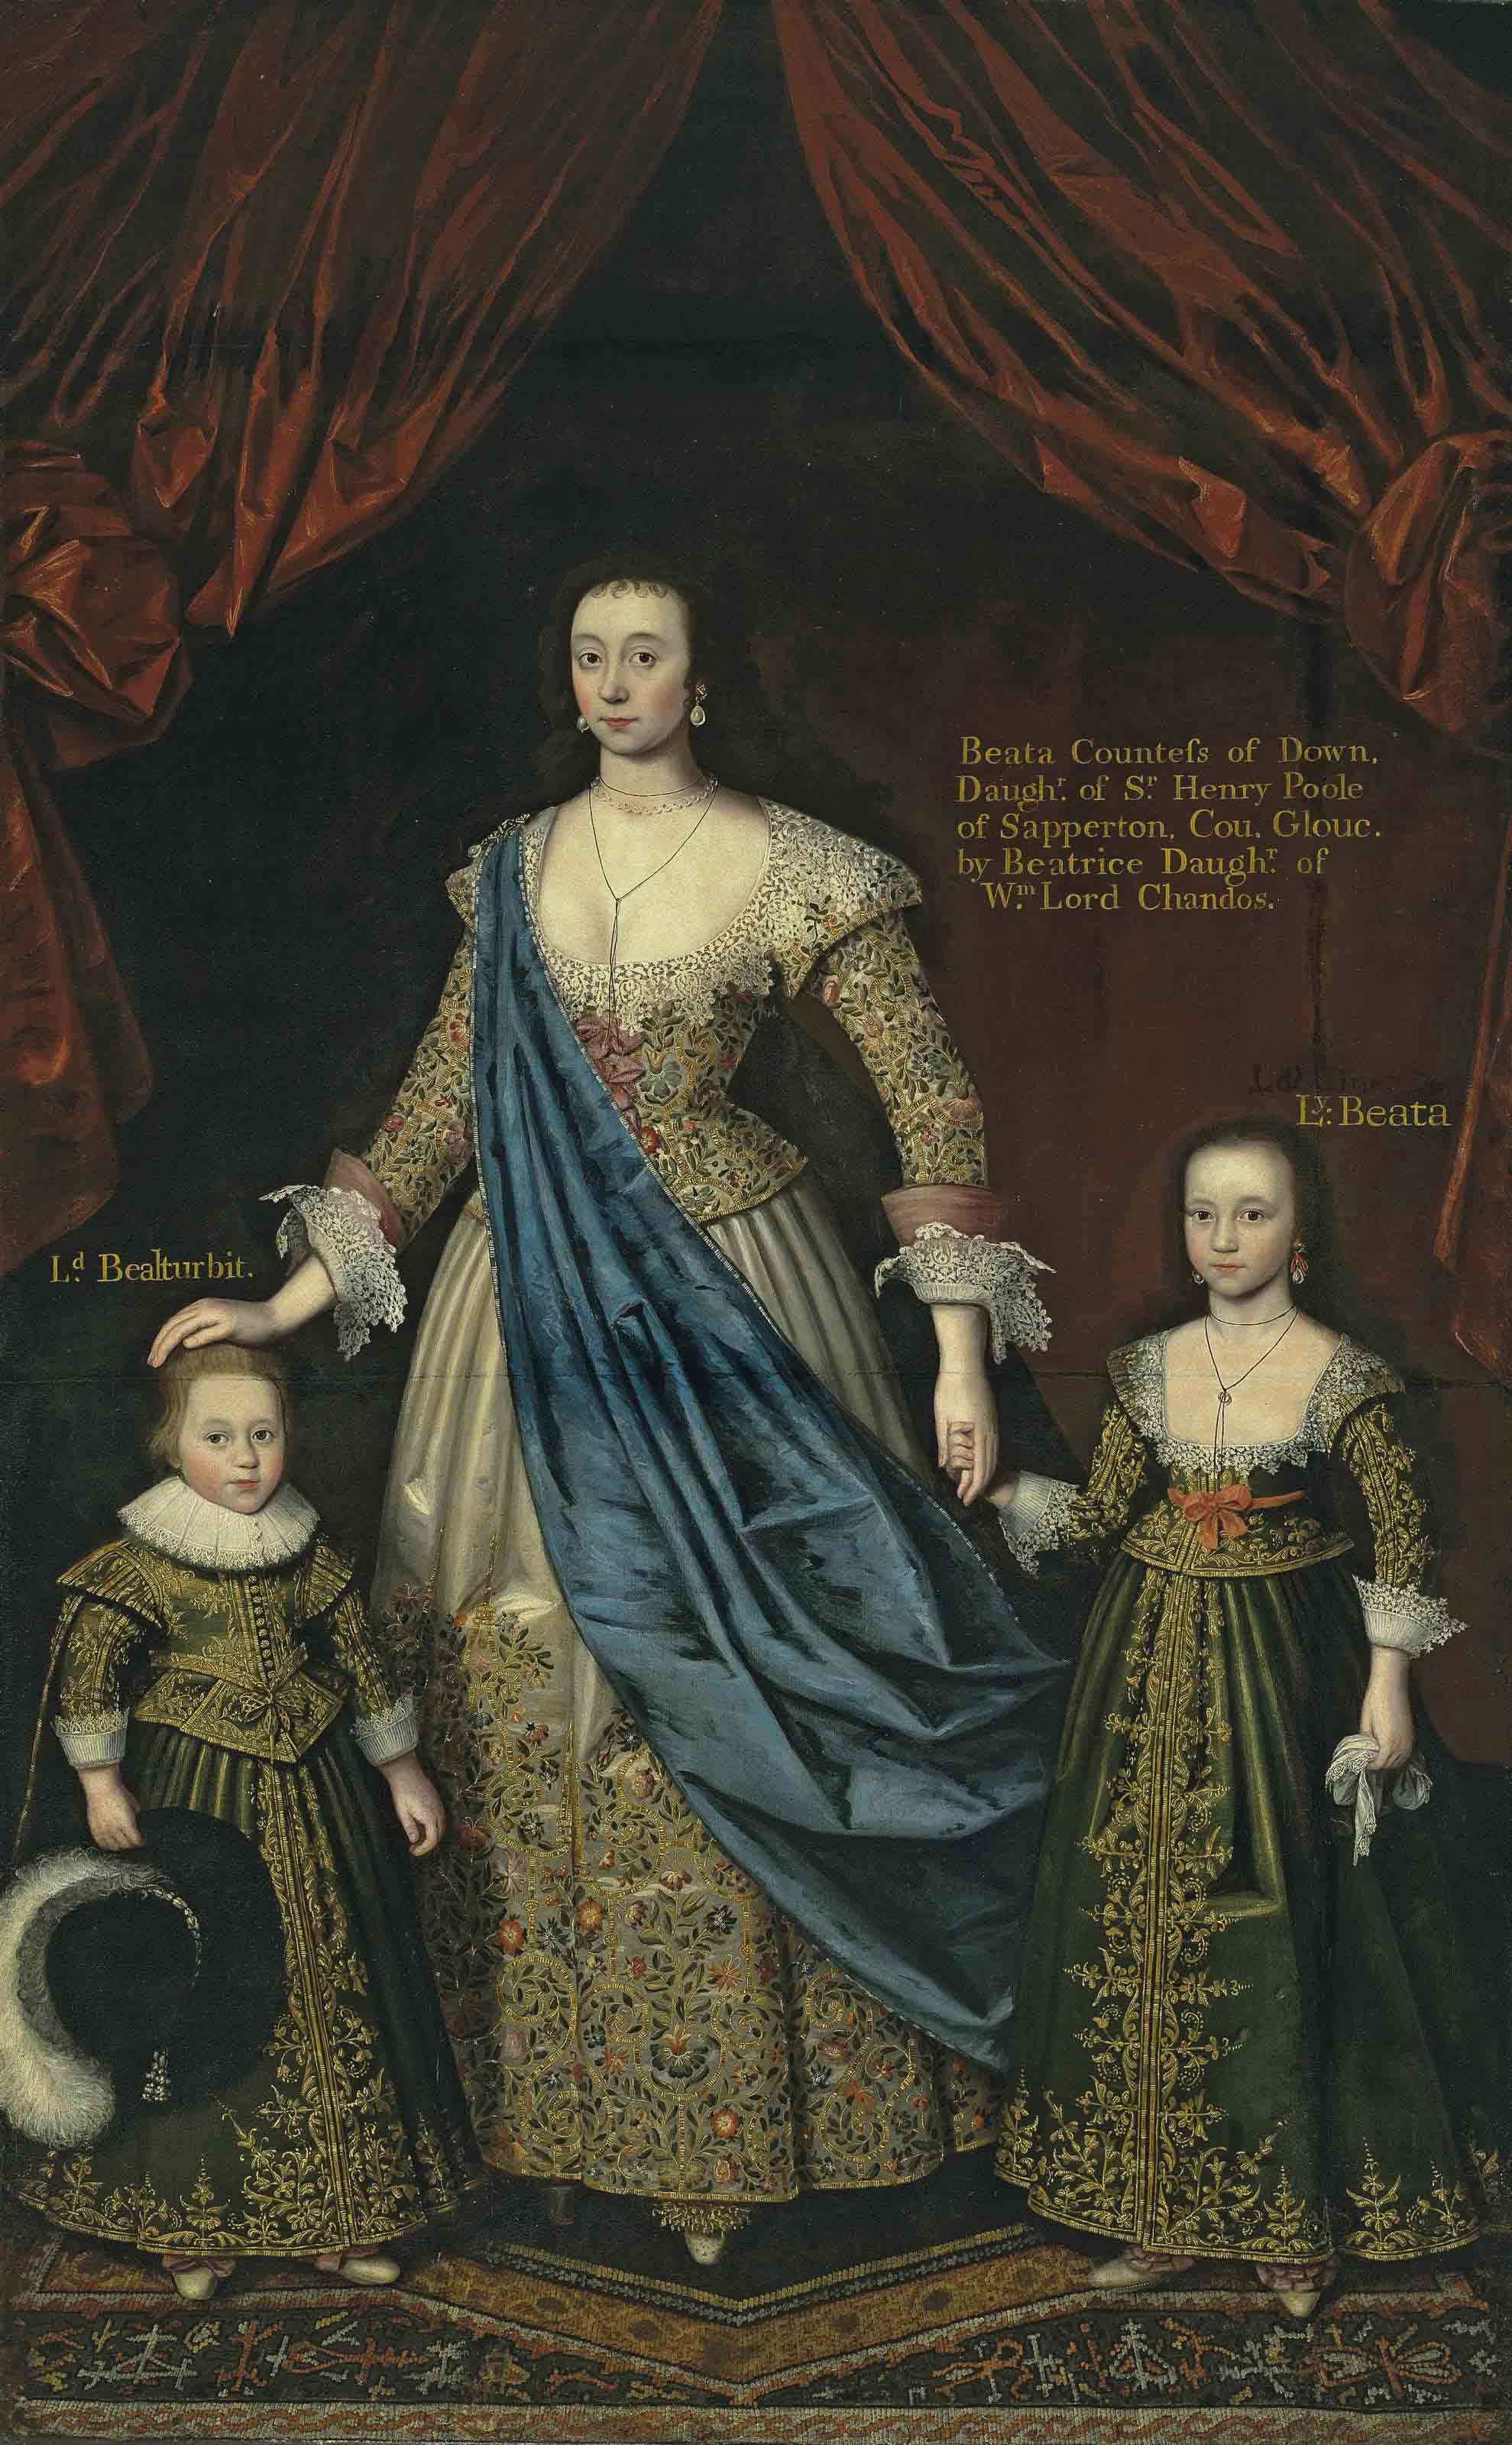 Triple portrait of a lady, thought to be Elizabeth, wife of Sir William Pope (1596-1624), with her children, full-length, in an interior